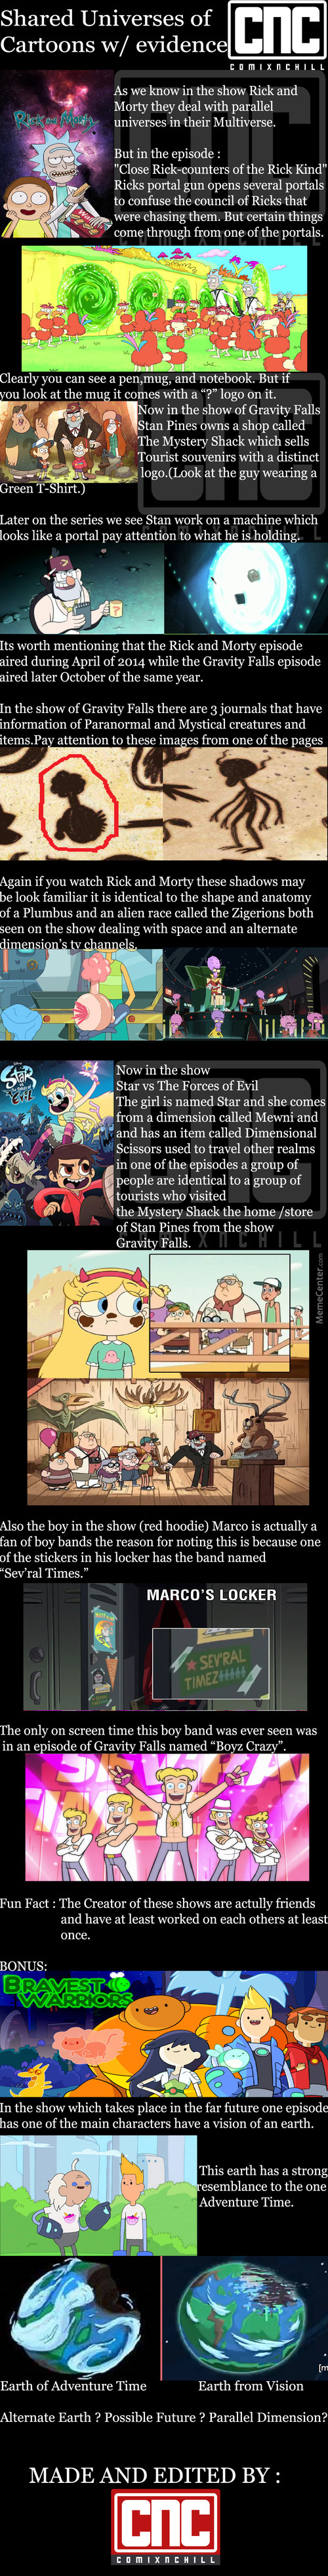 Shared Universes Of Modern Day Cartoons